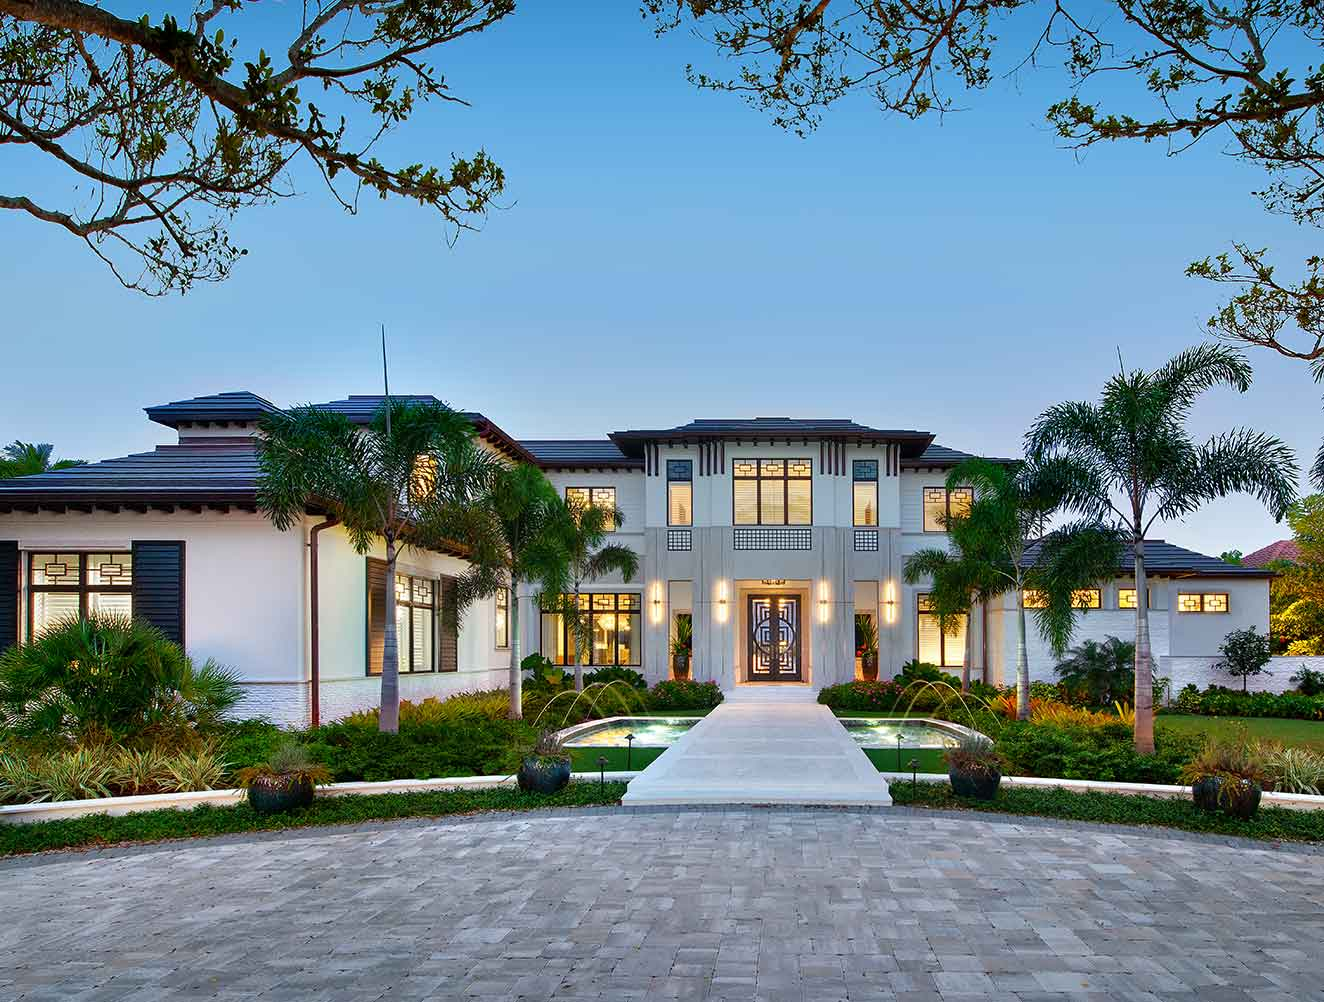 Galleon Estate in Naples Florida, single family home designed by Kukk Architecture & Design Naples Architecture Firm